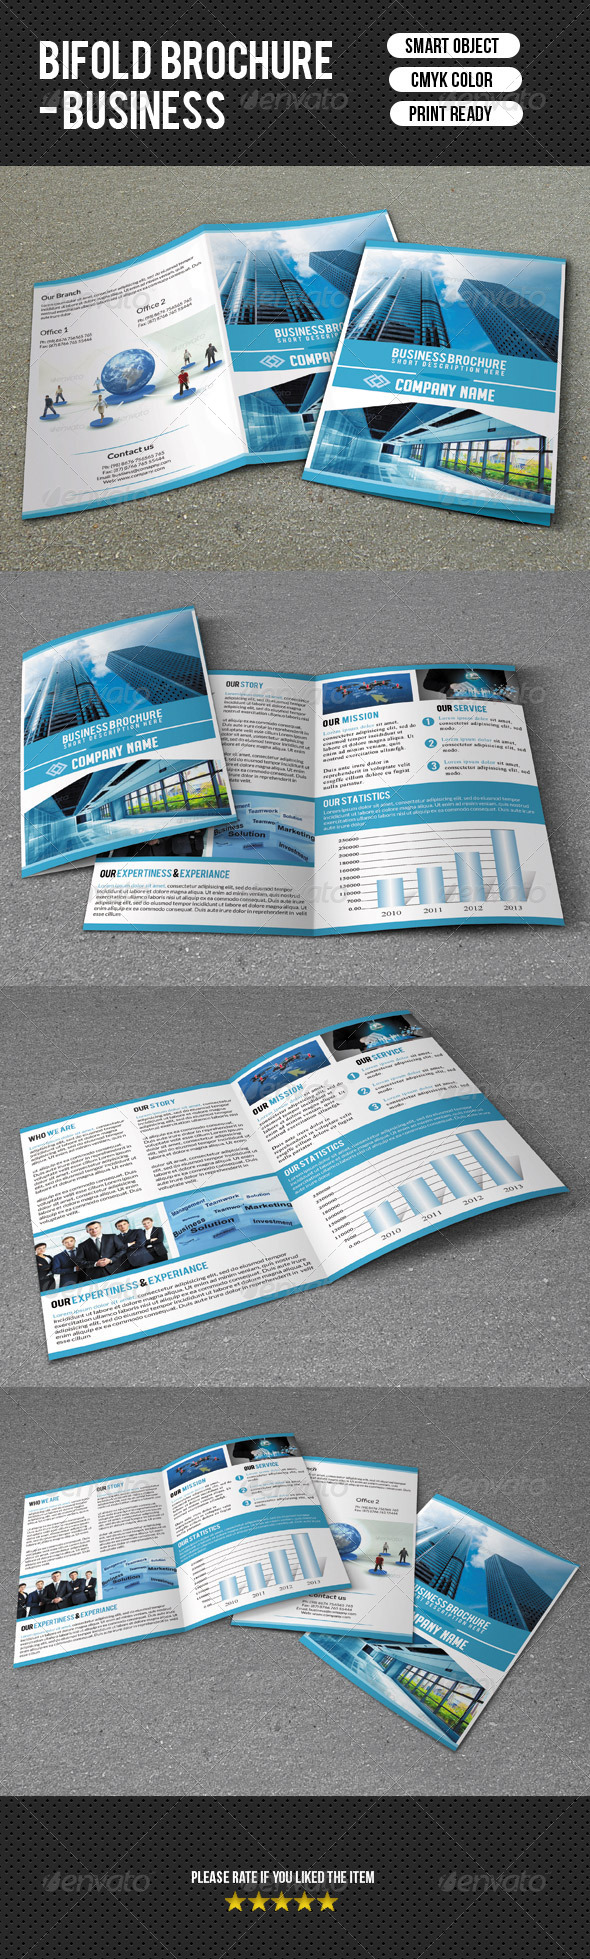 GraphicRiver Bifold Business Brochure 7500011